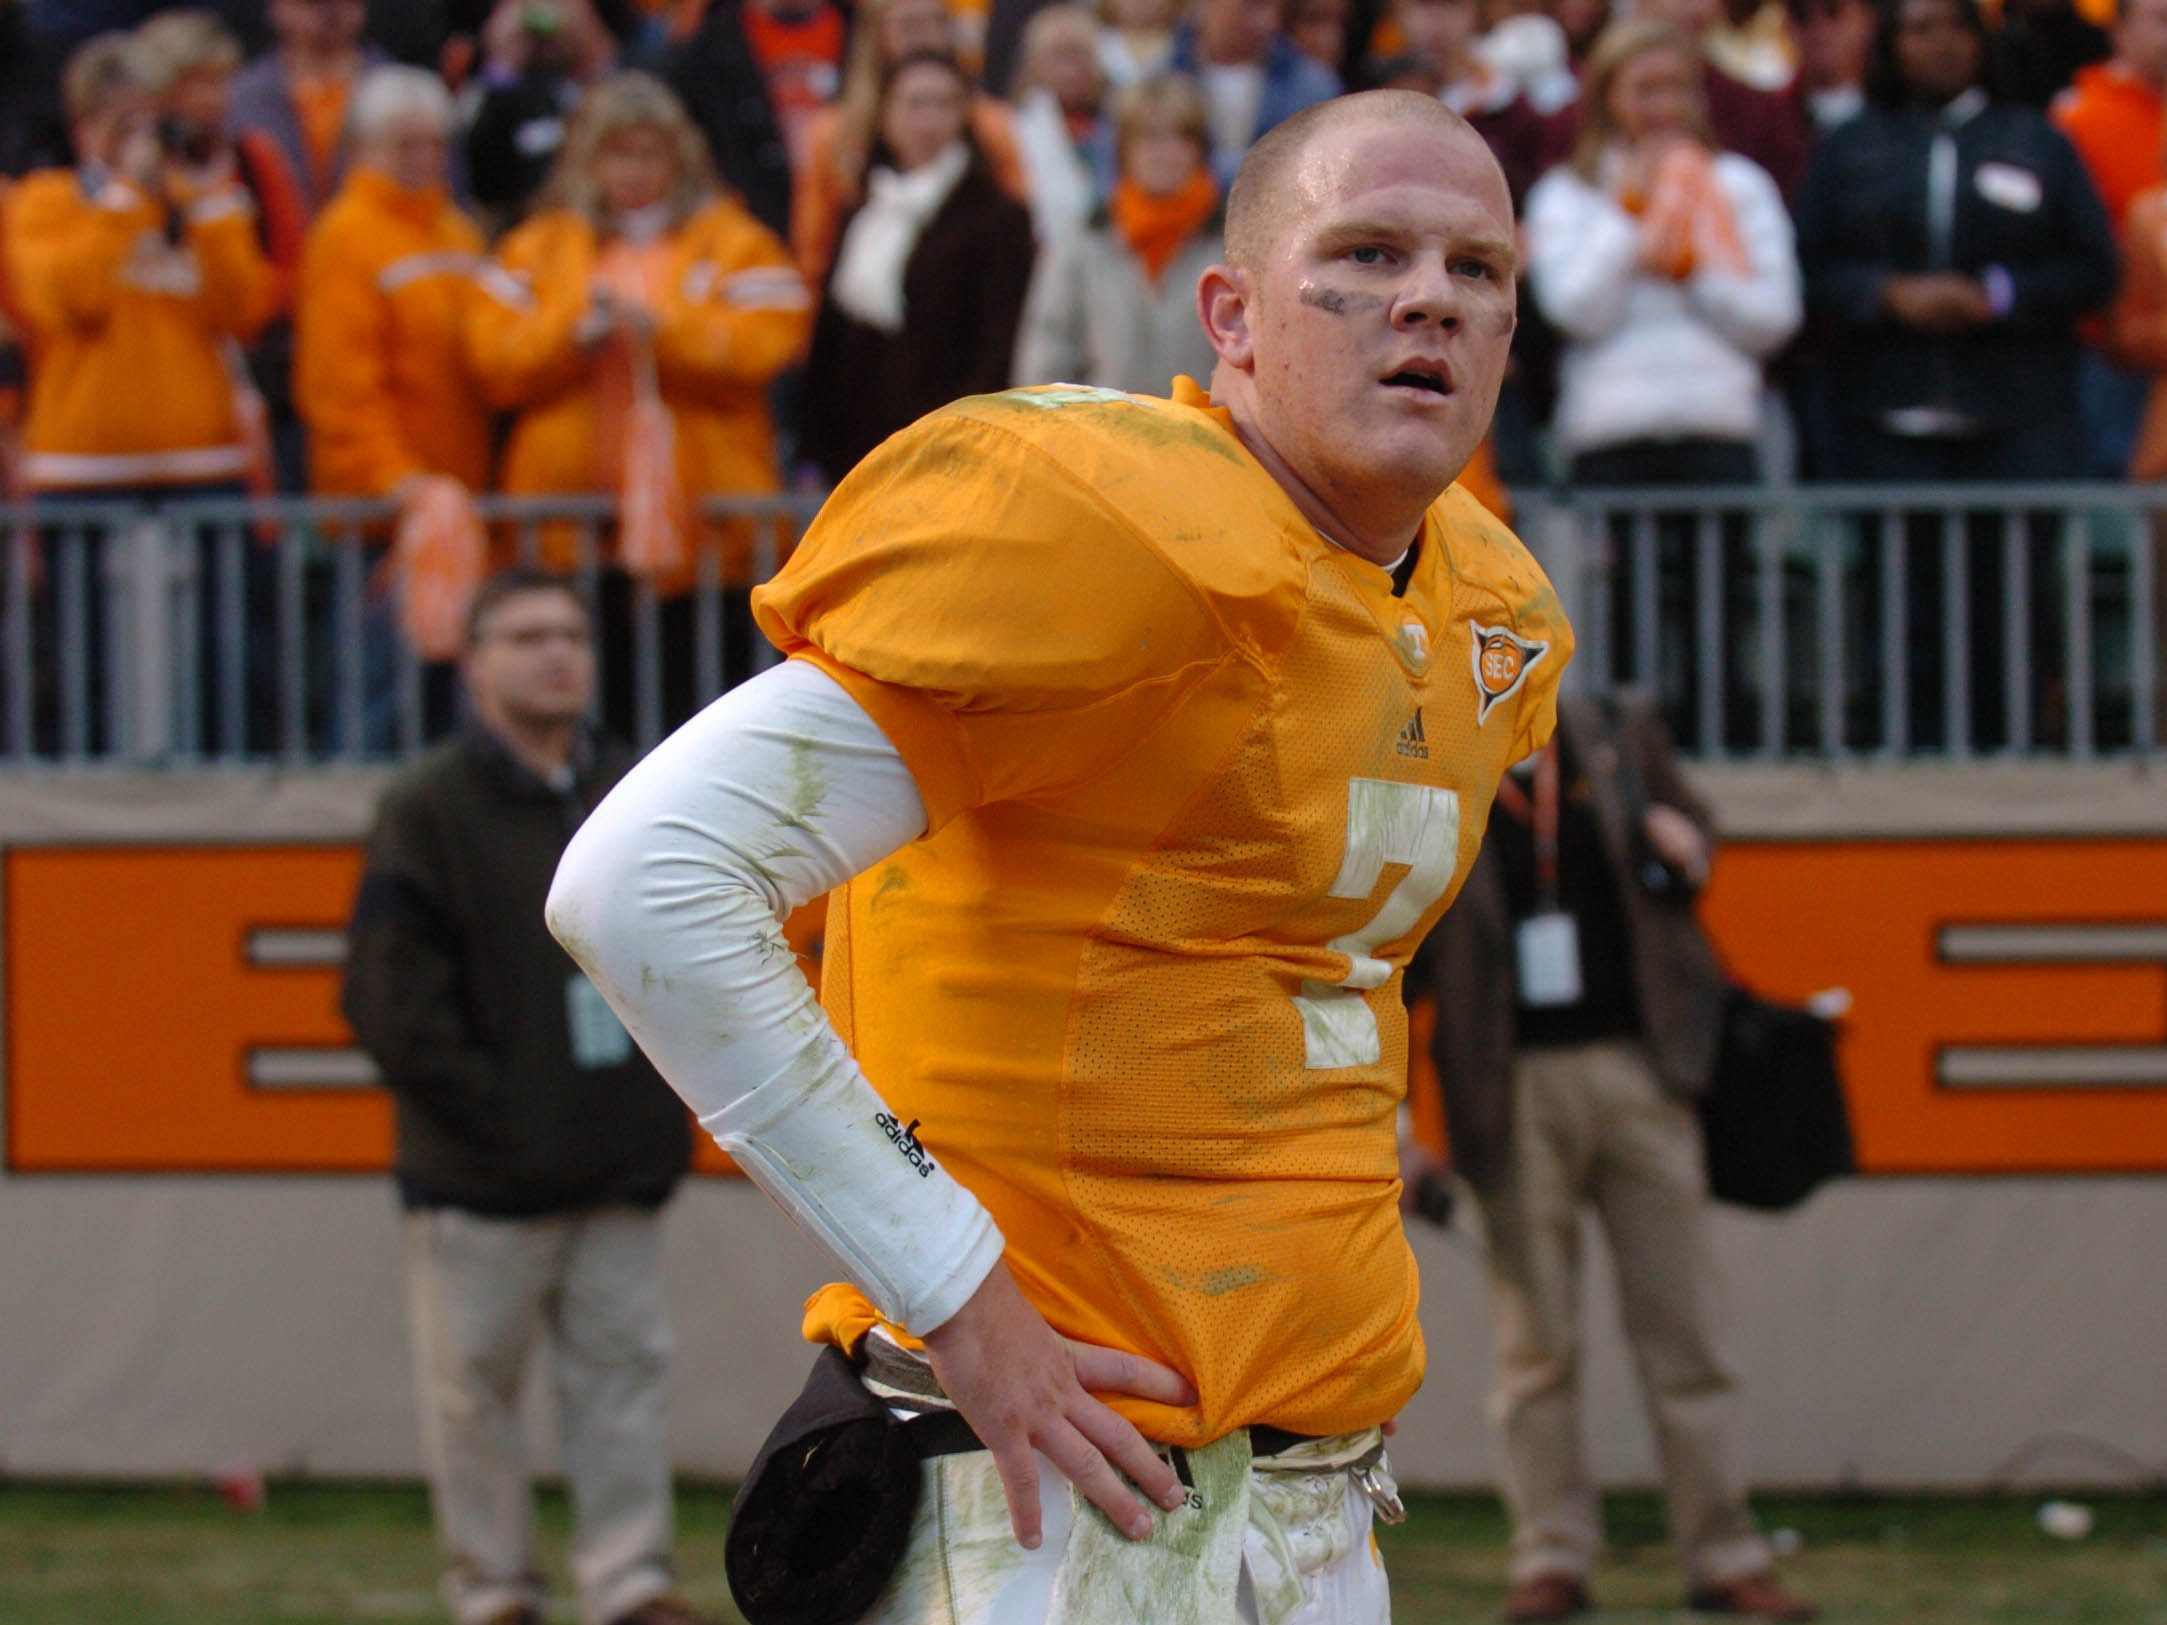 utvandy10.ASB#4741.JPG--SPORTS-- Tennessee quarterback Rick Clausen pauses before leaving the field after the 28-24 loss to Vanderbilt Saturday at Neyland Stadium in 2005.